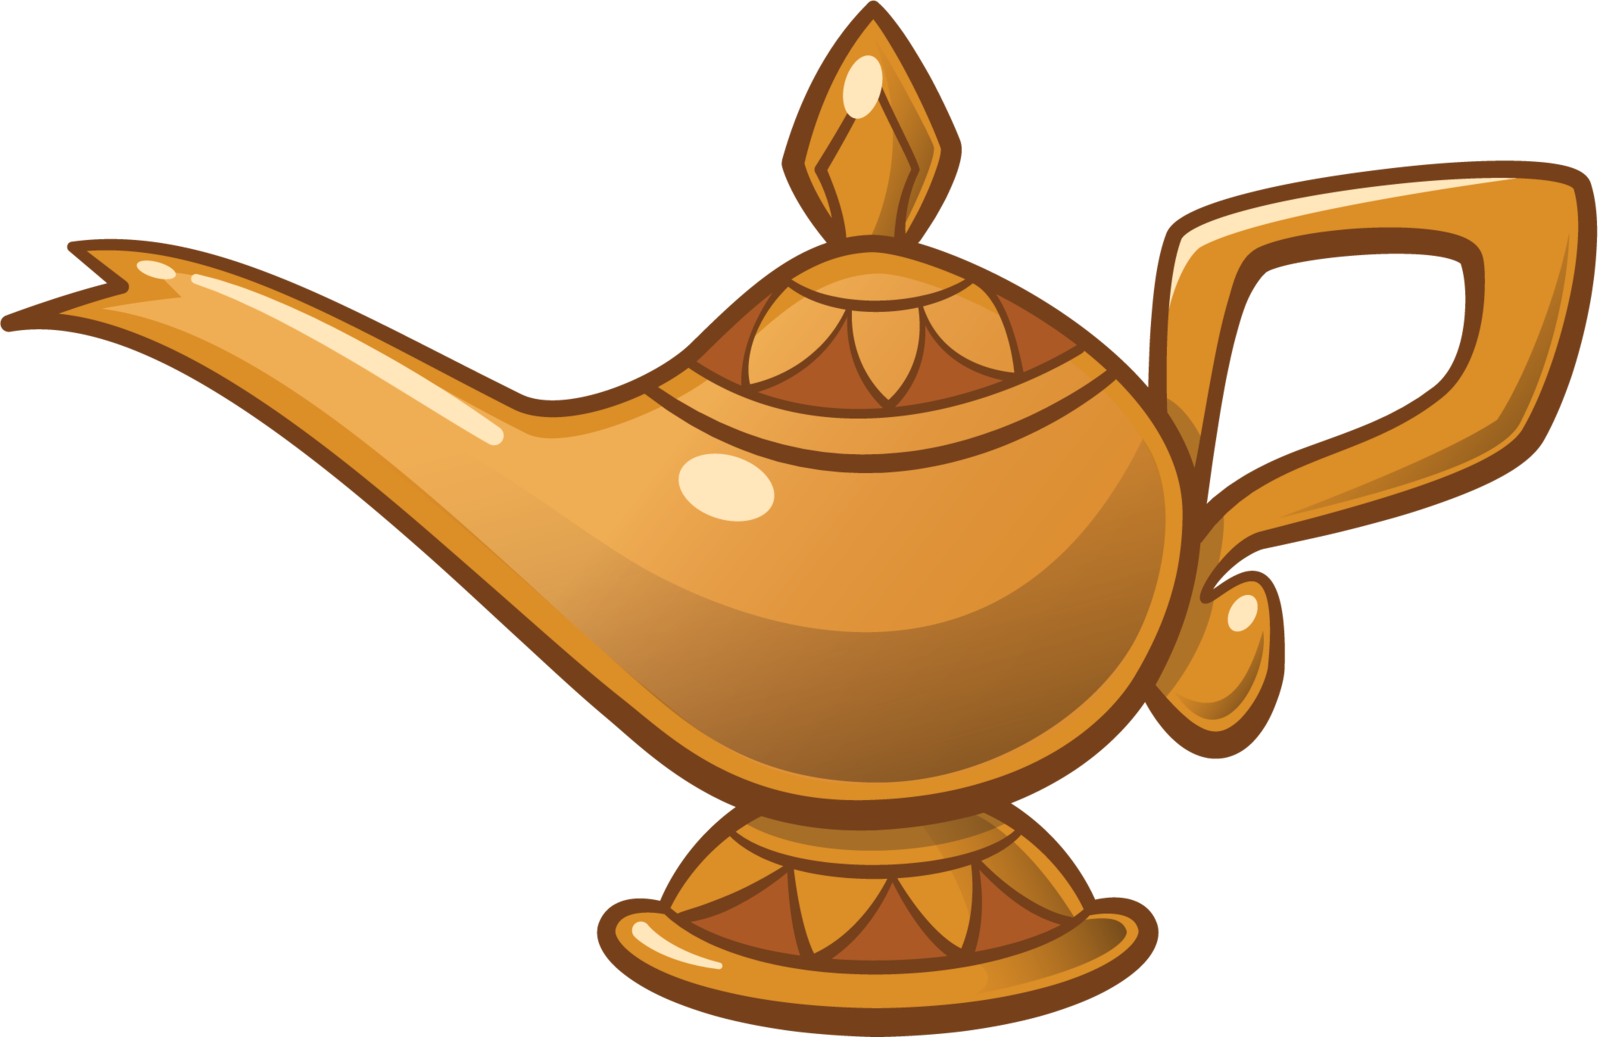 Star wars emoji blitz clipart png library download Image - Magic Lamp.png | Disney Emoji Blitz Wiki | FANDOM powered by ... png library download